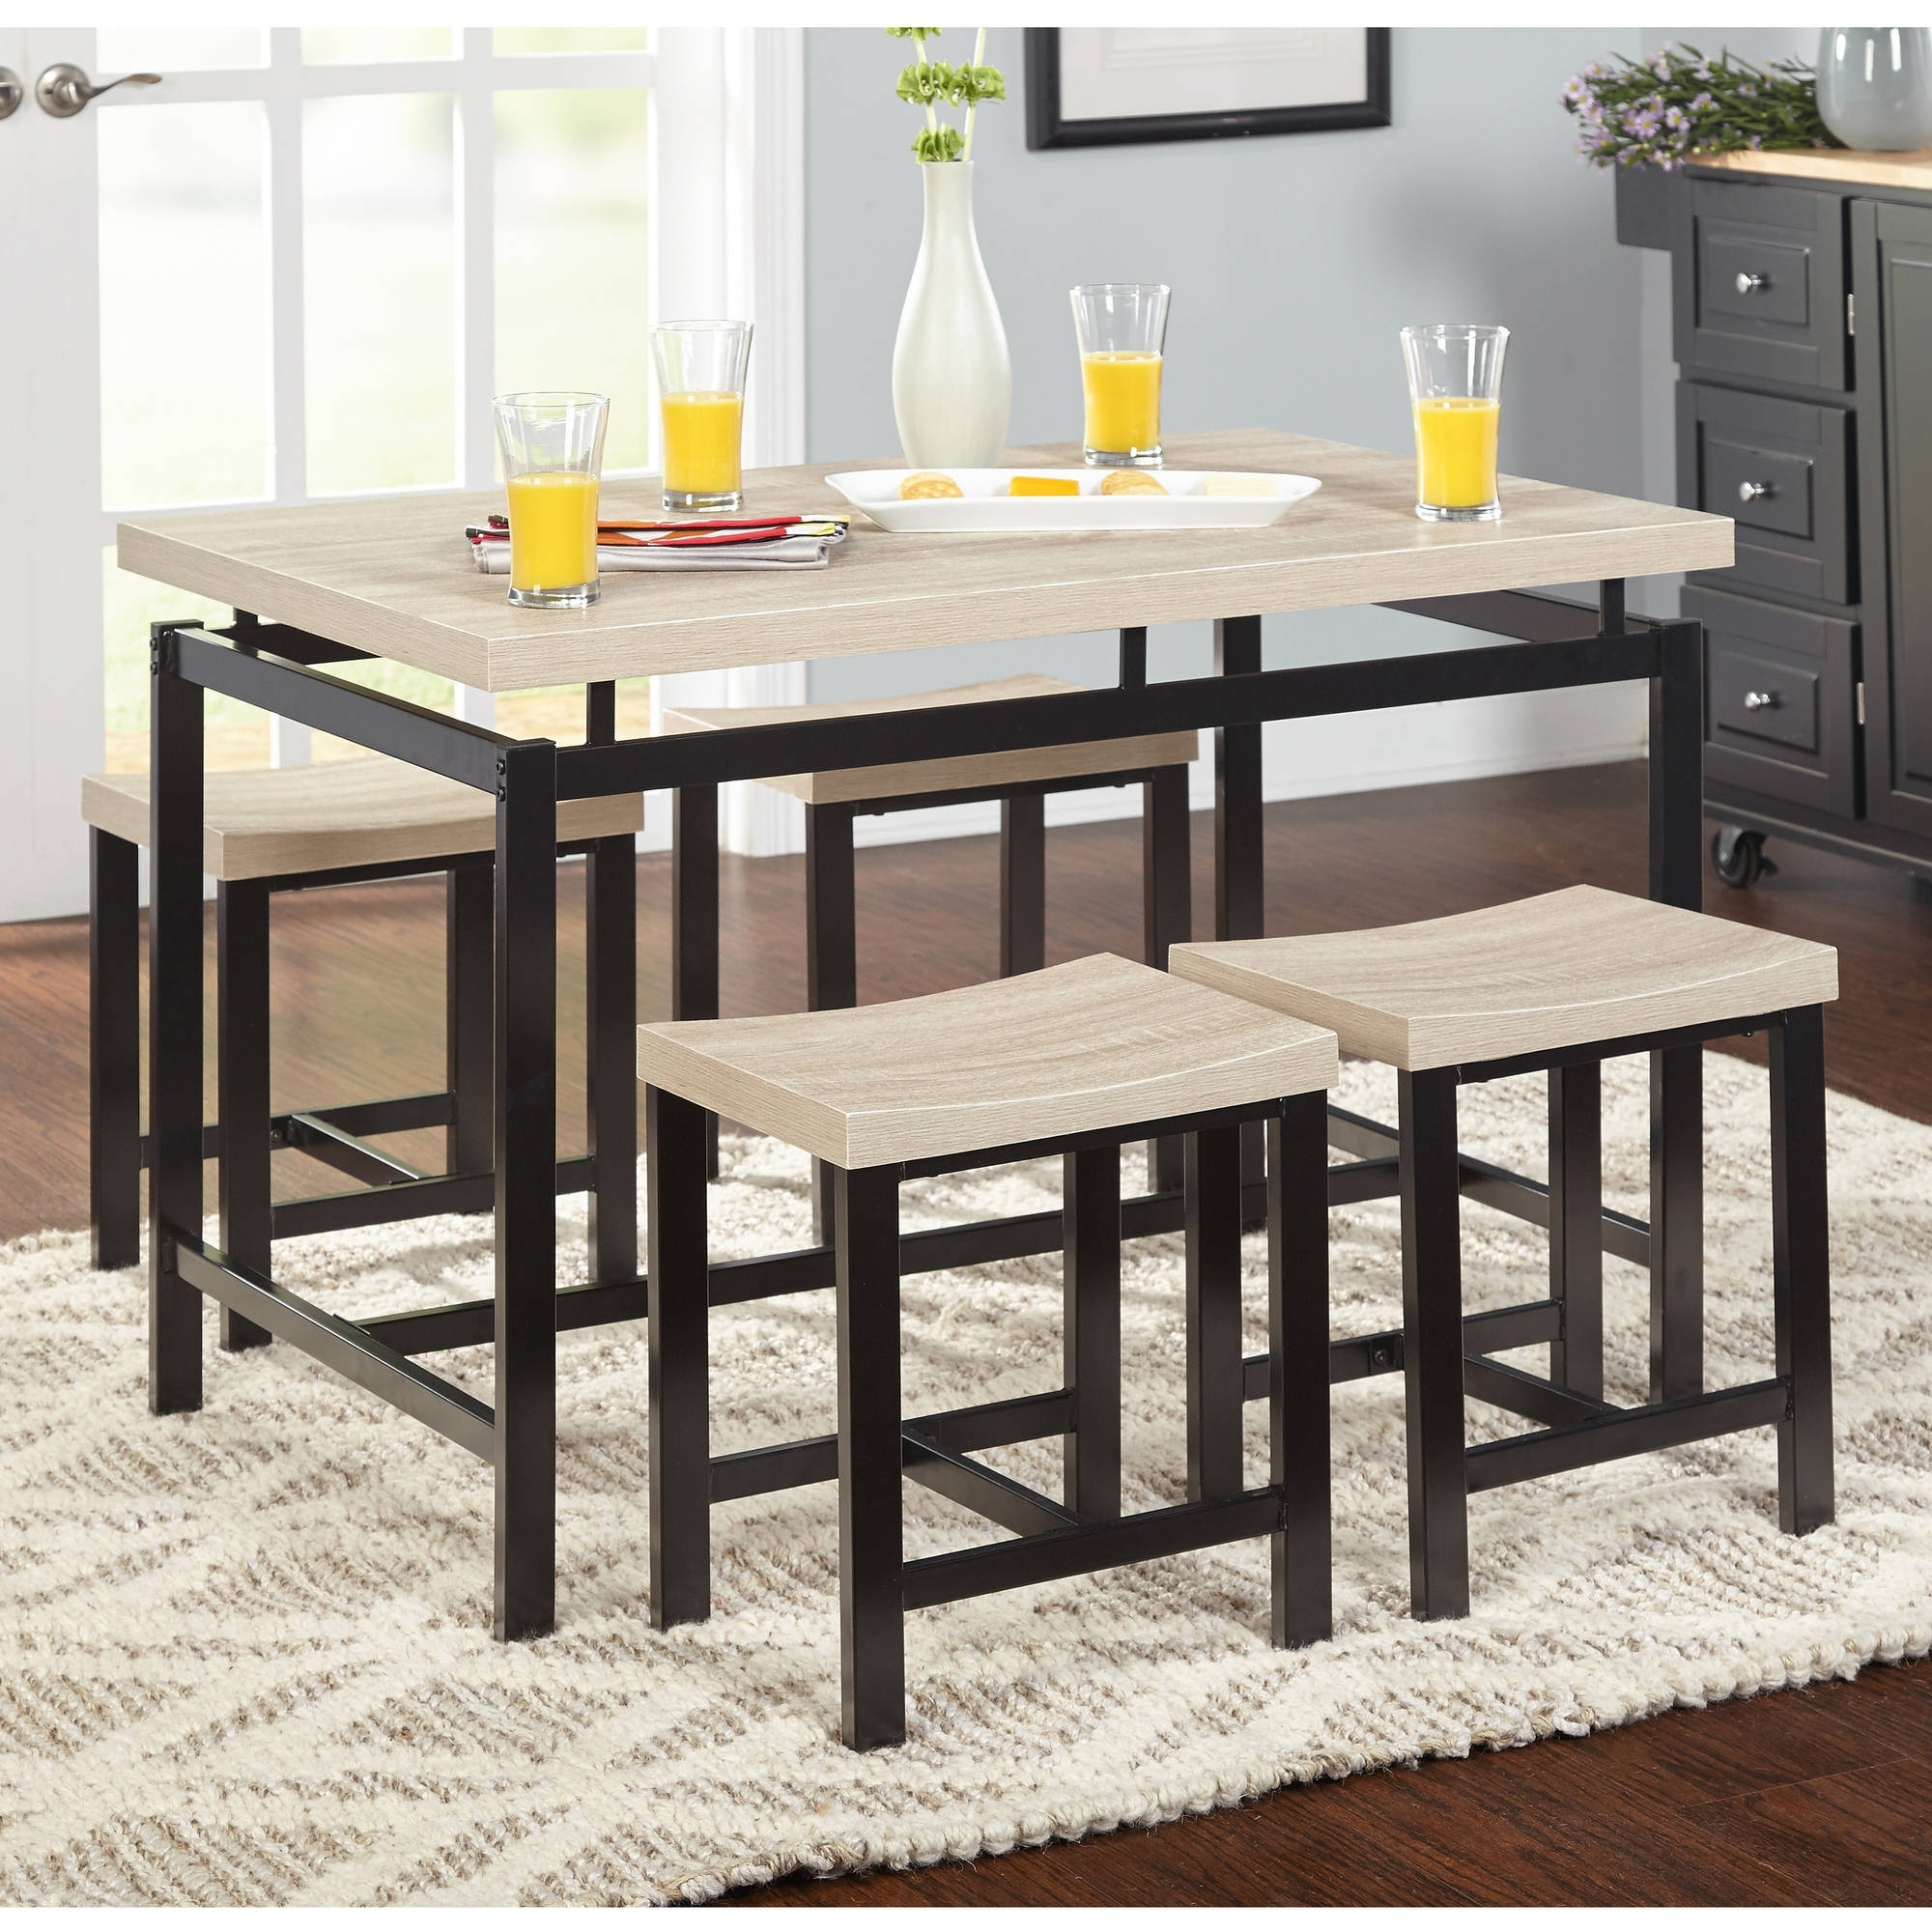 Dining Sets intended for Recent 5-Piece Delano Dining Set, Natural - Walmart